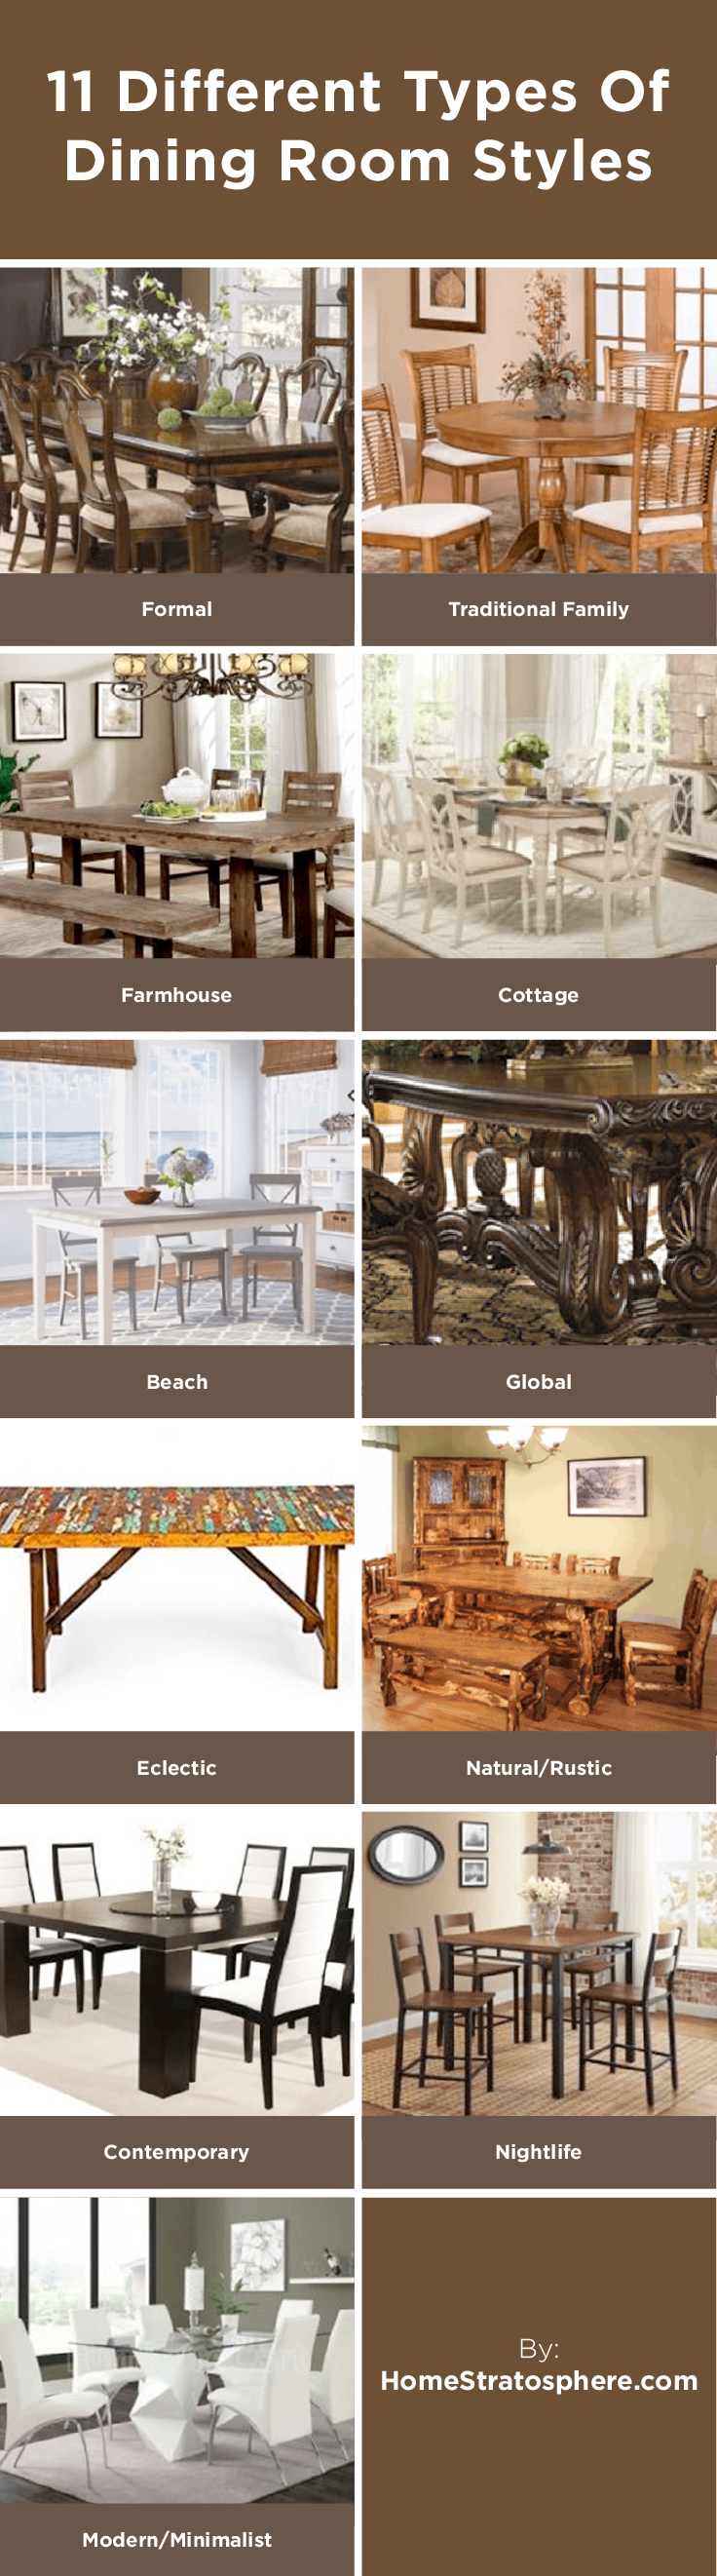 11 Different Types of Dining Room Styles -